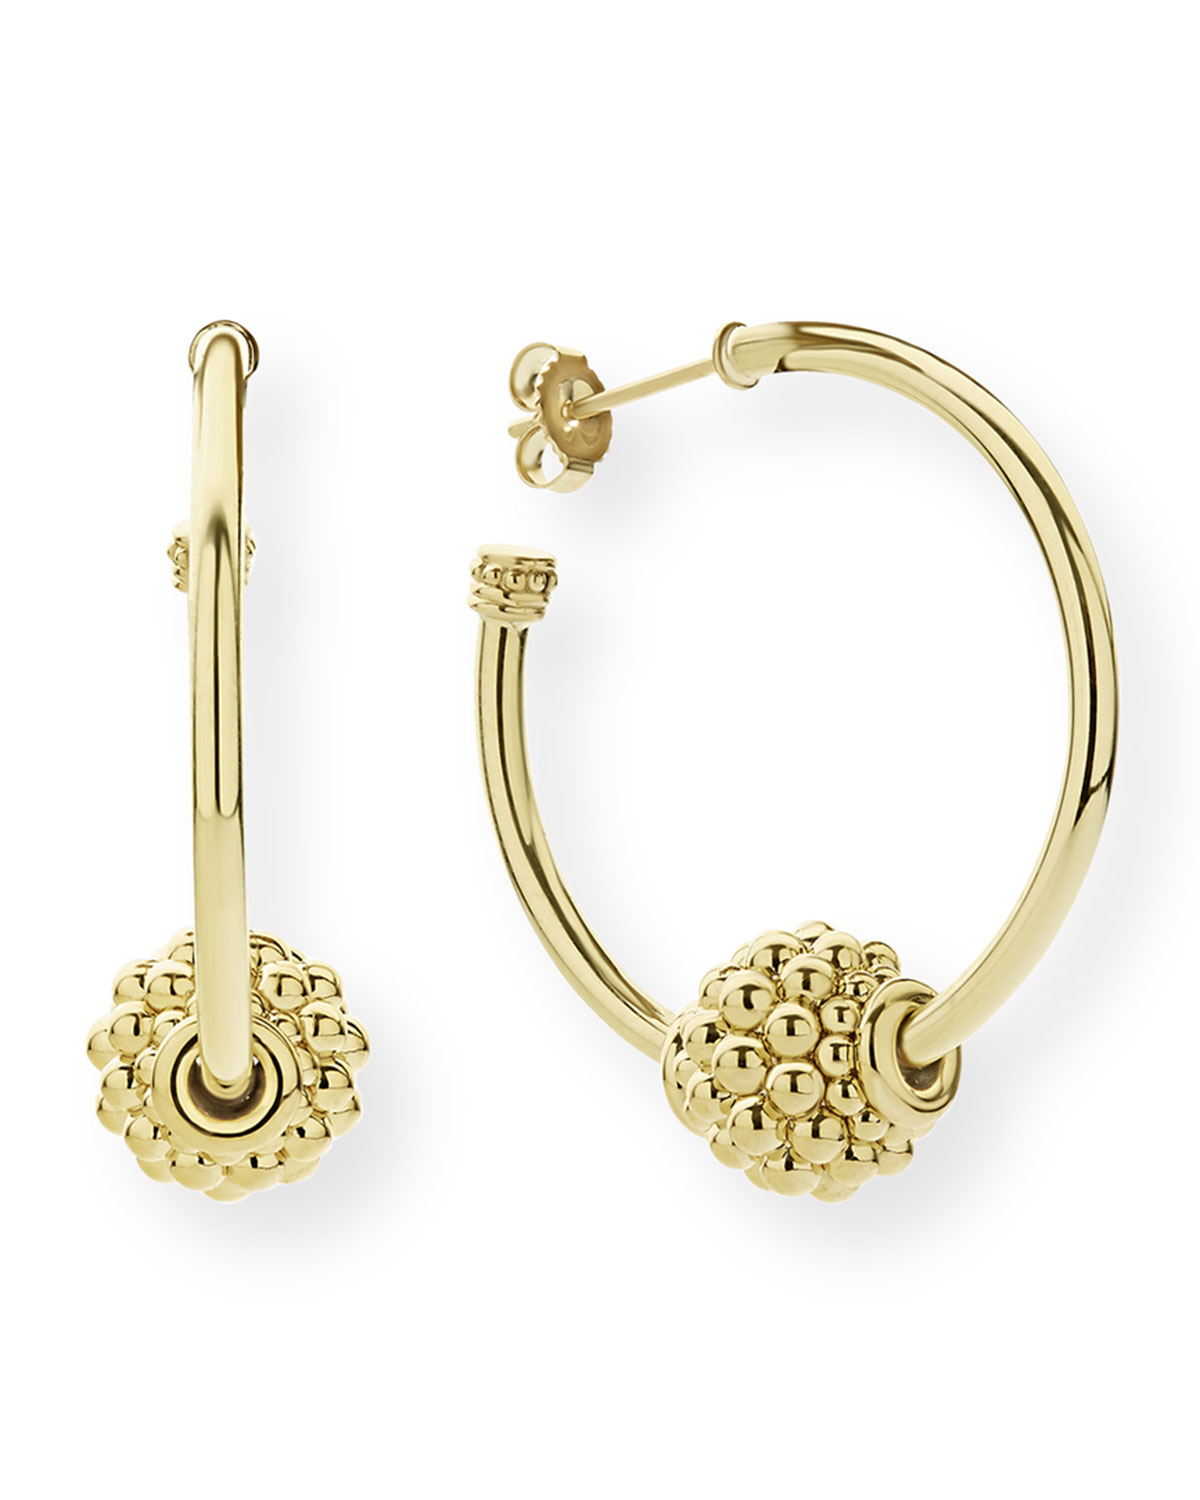 Lagos Caviar 18k Gold Hoop Earrings, 30mm